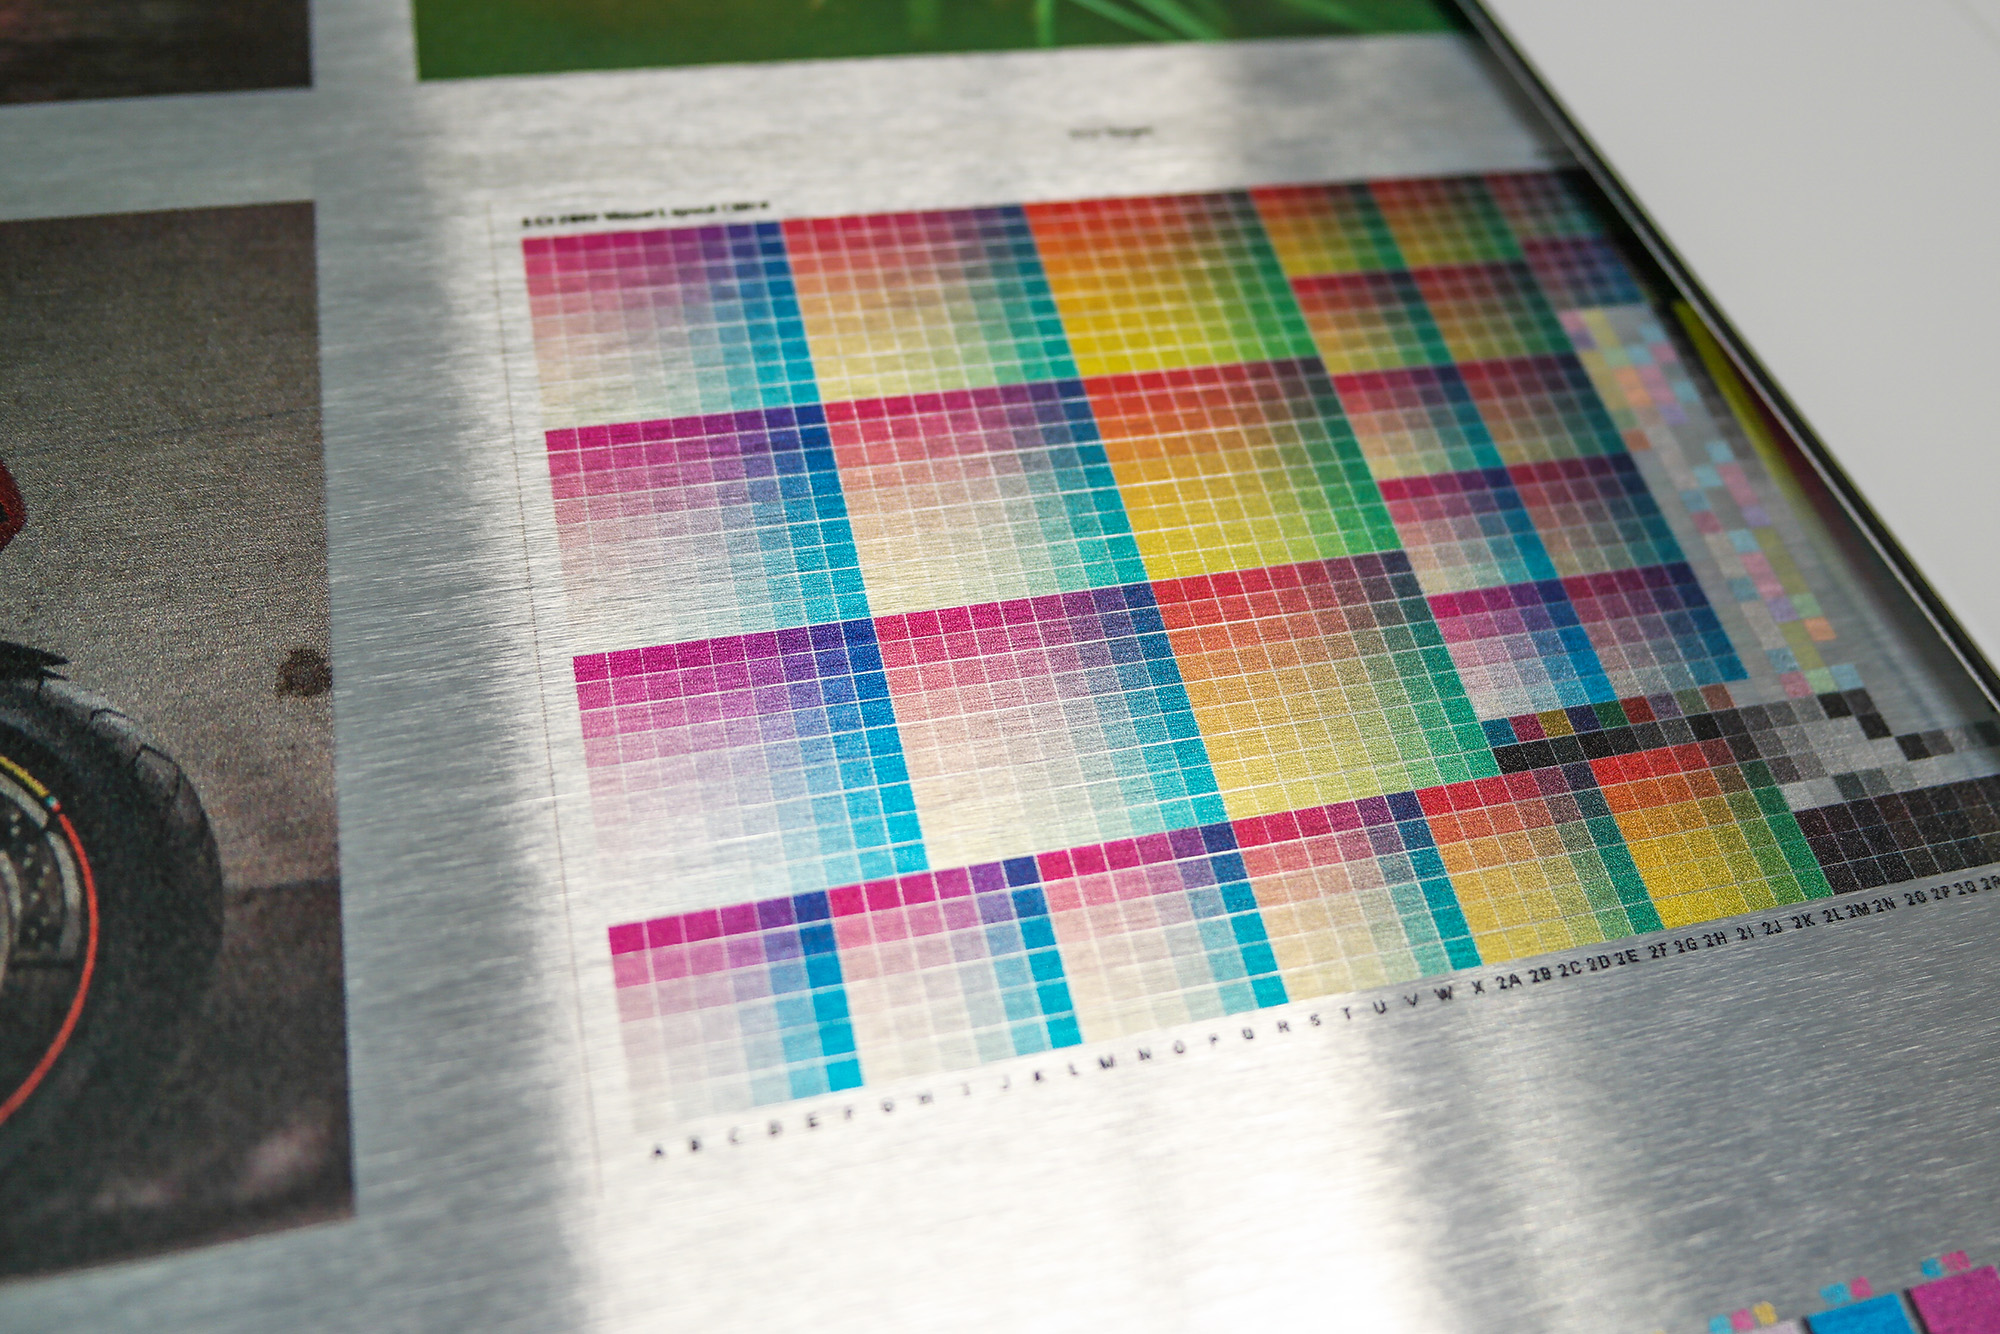 Large Format Printing With Canon Océ color check